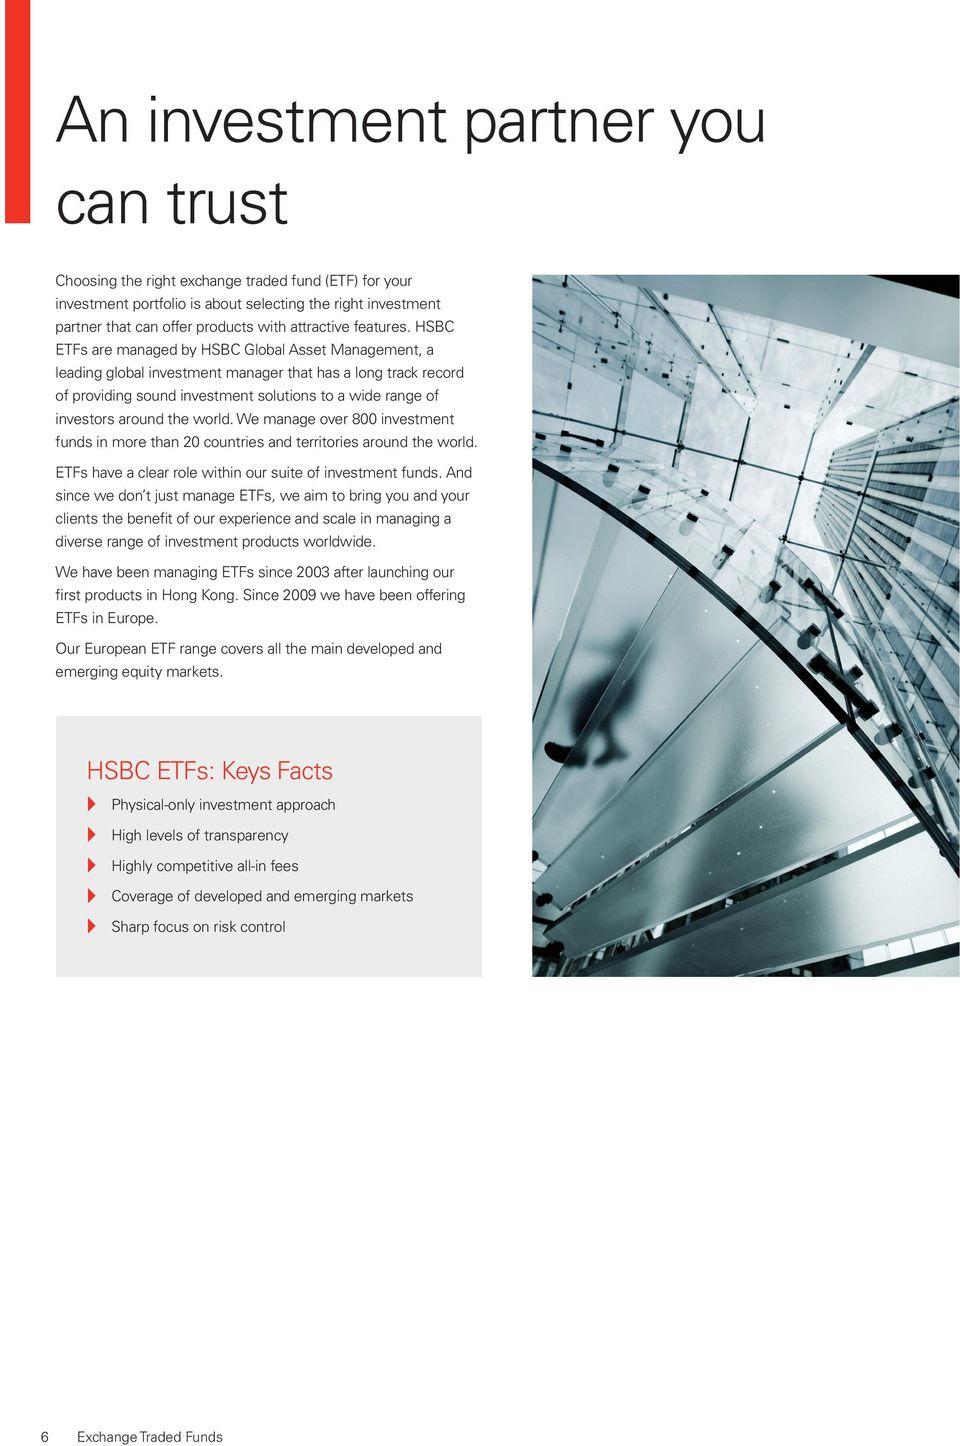 HSBC ETFs are managed by HSBC Global Asset Management, a leading global investment manager that has a long track record of providing sound investment solutions to a wide range of investors around the